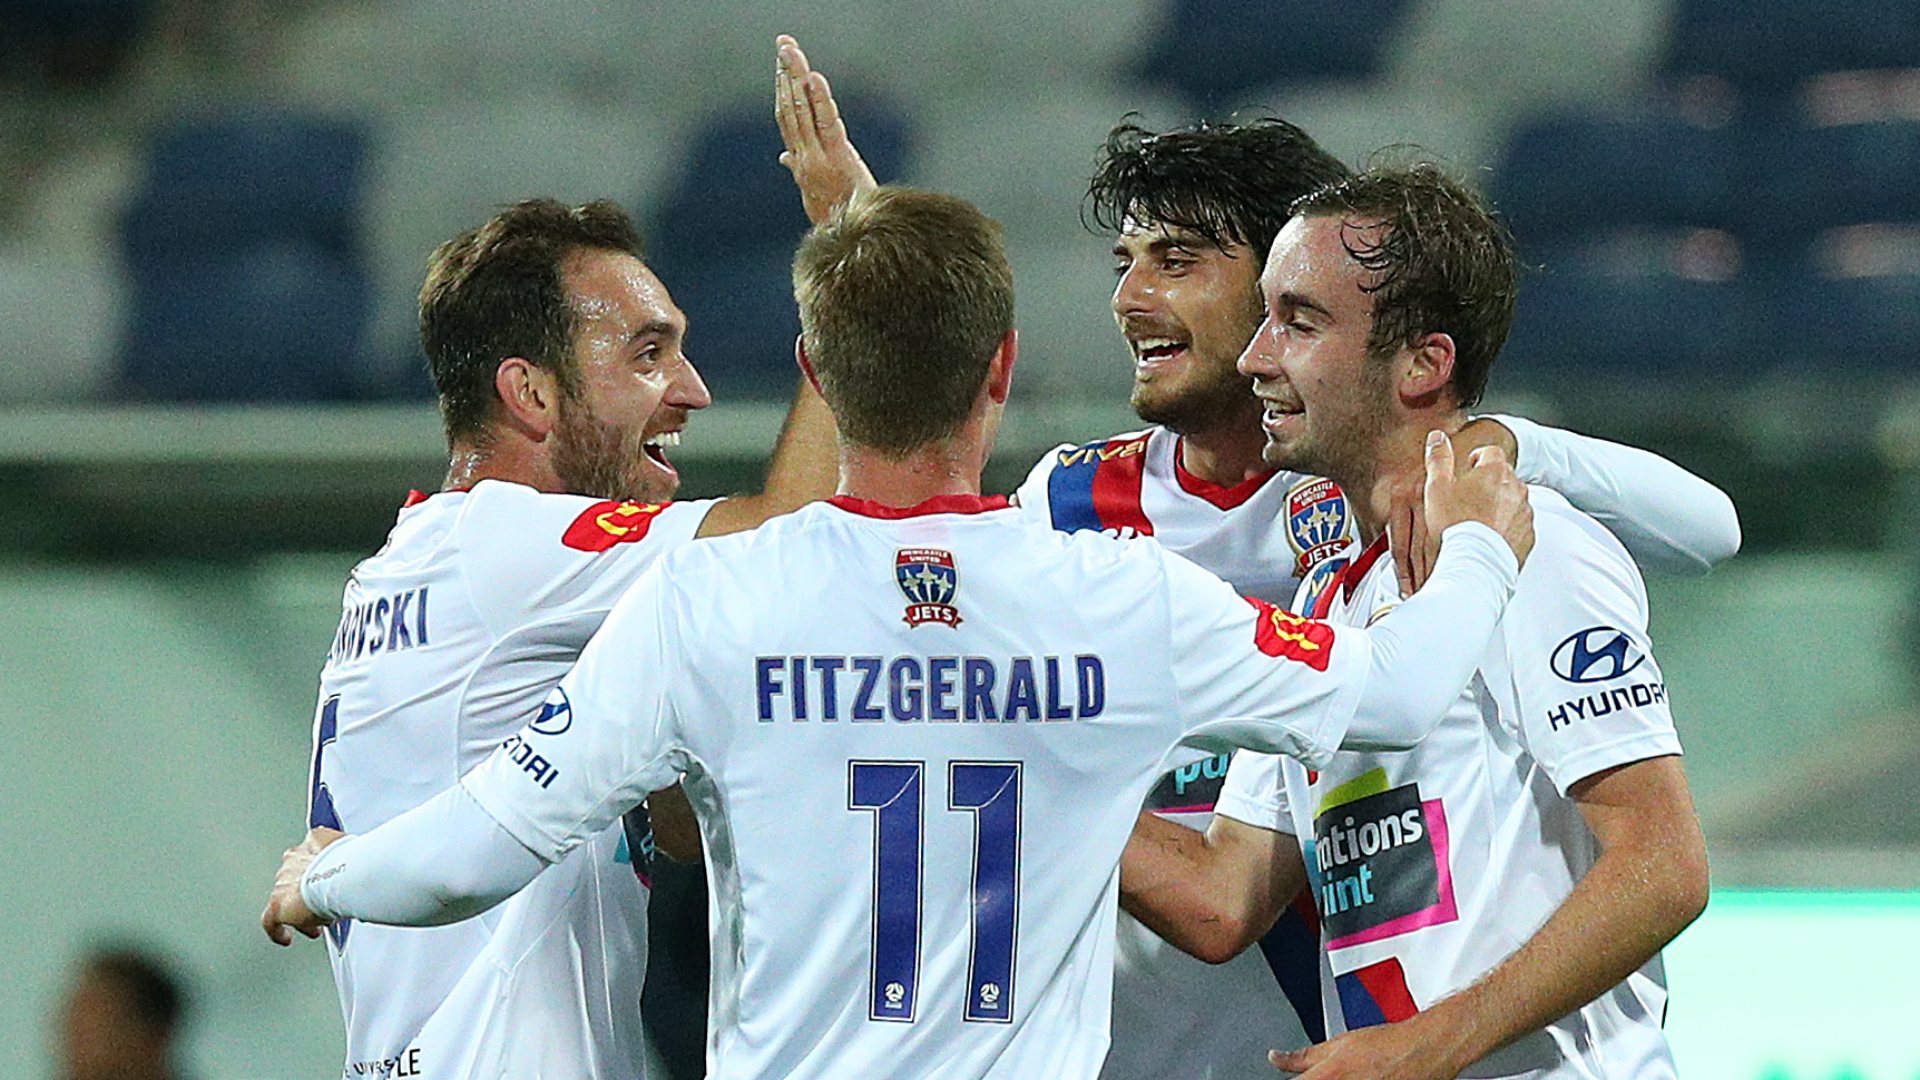 A-League Review: Newcastle edge Western United, Adelaide overwhelm Mariners